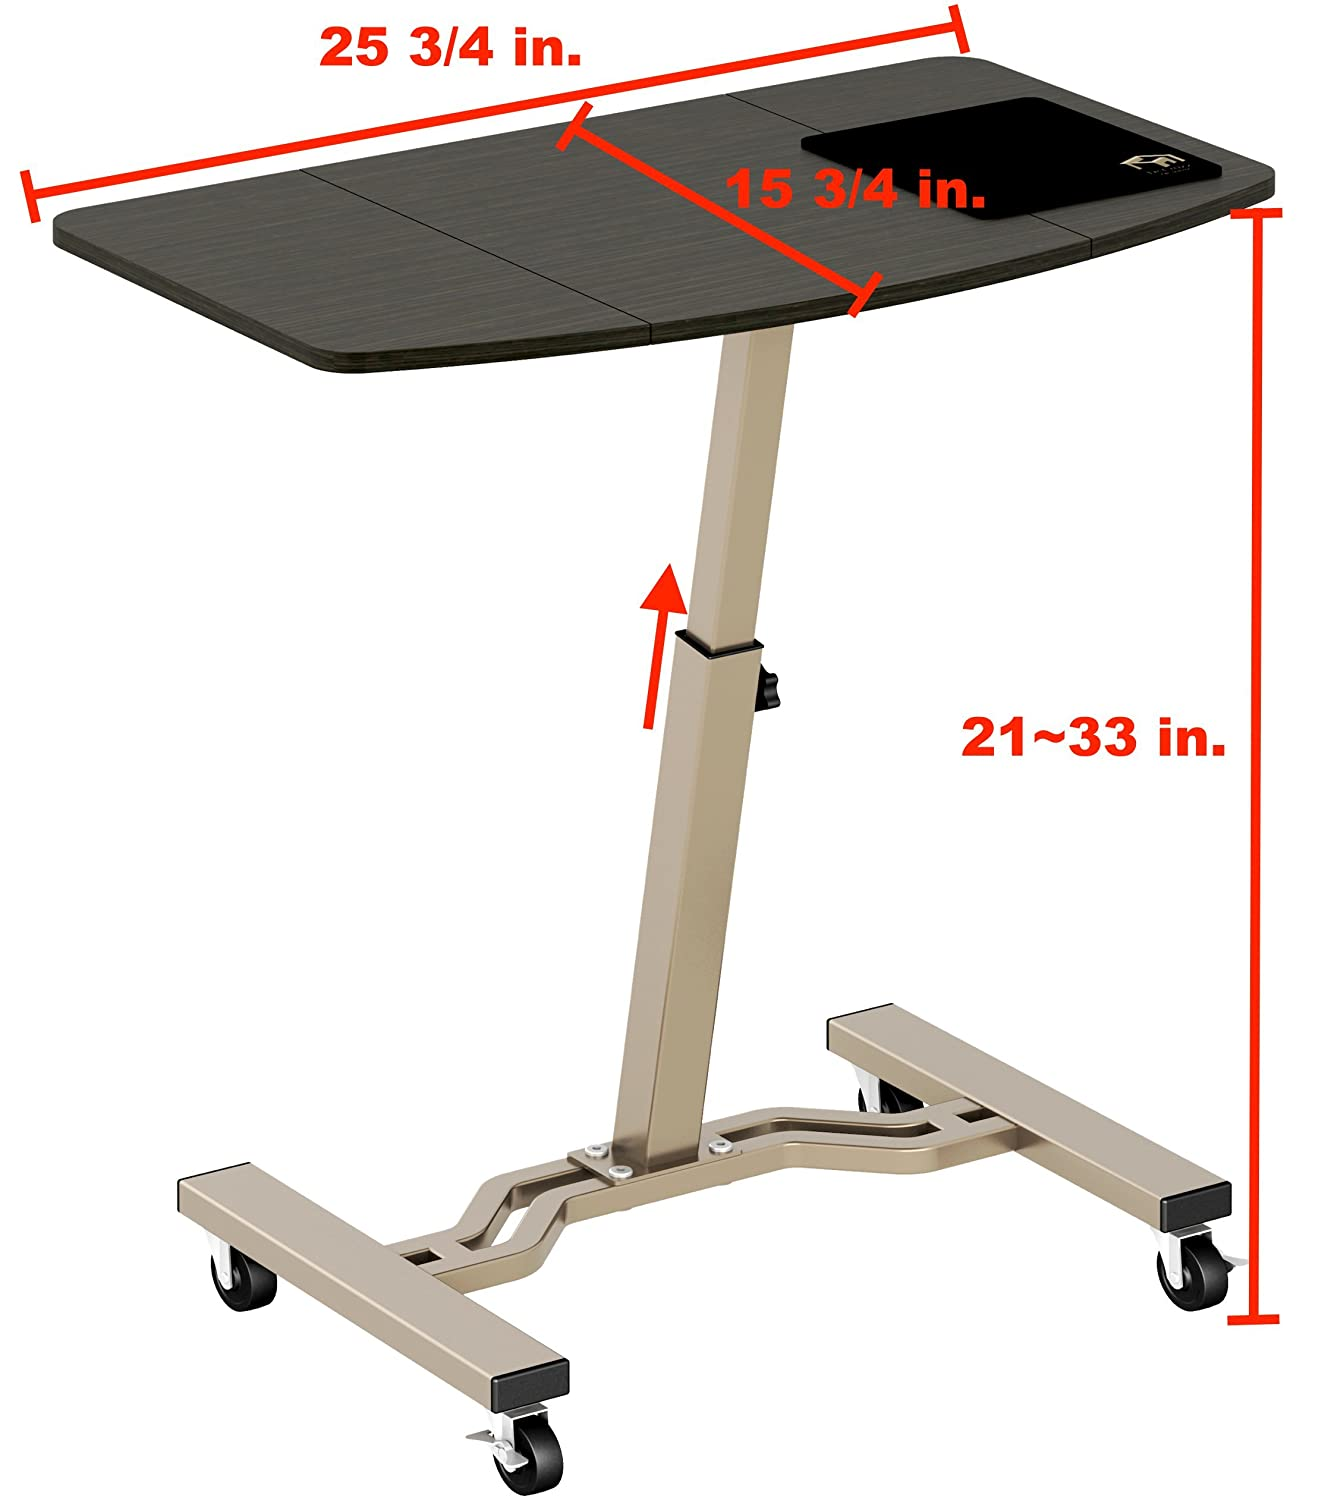 Amazon LeCrozz Height Adjustable Mobile Laptop Stand Desk Rolling Cart Kitchen & Dining